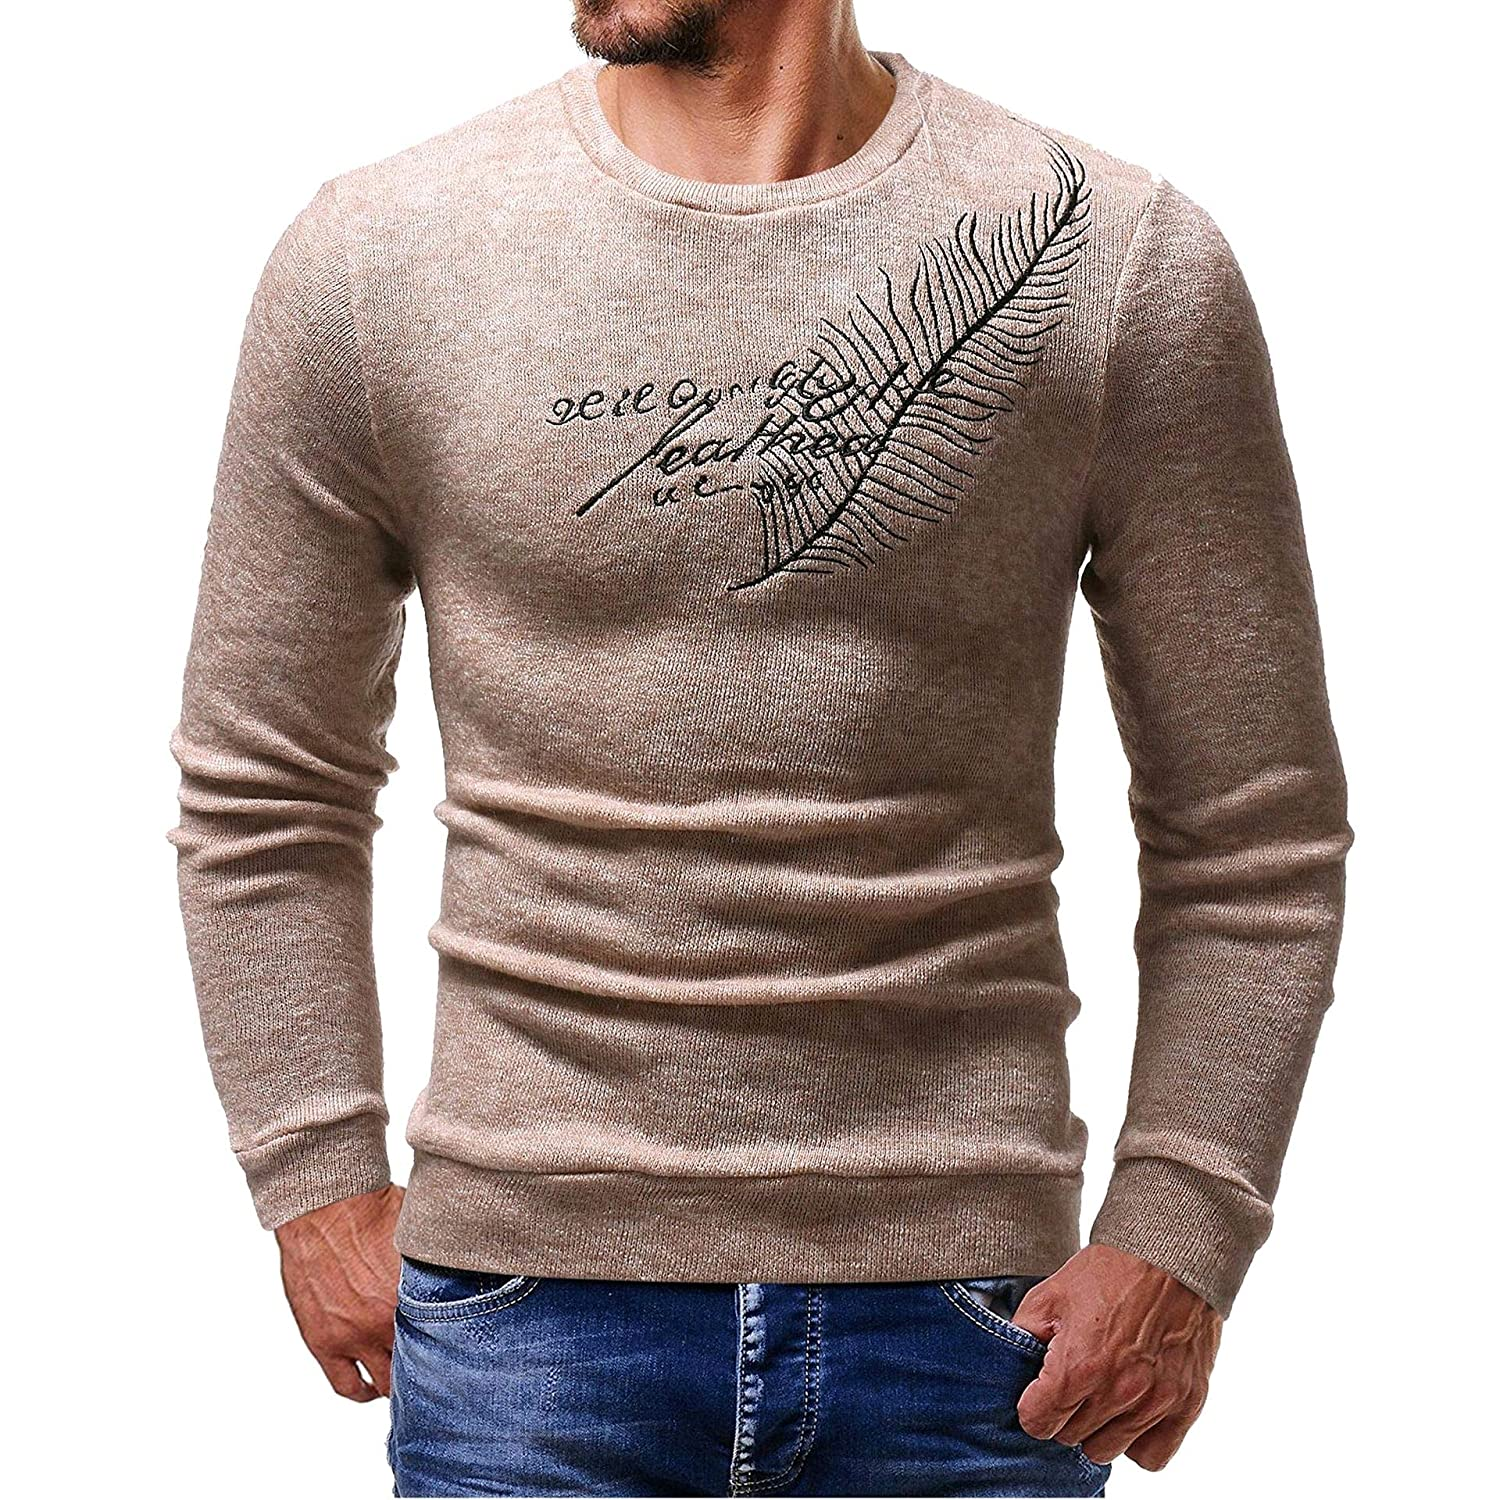 YUNY Mens Knitting Silm Embroidery Plus Size Pullover Sweater Beige M